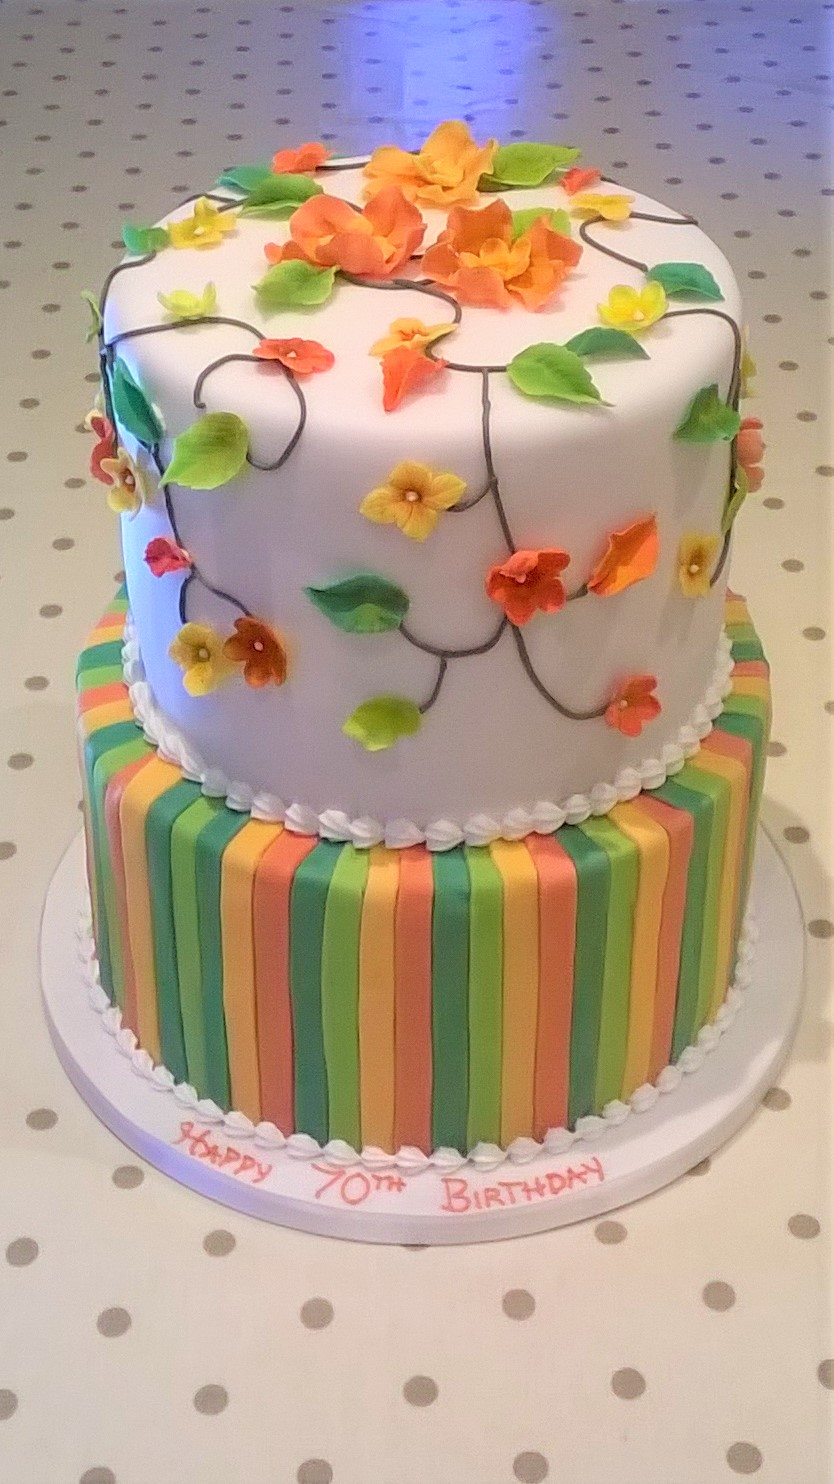 Tiered party cake with stripes and sugar flowers